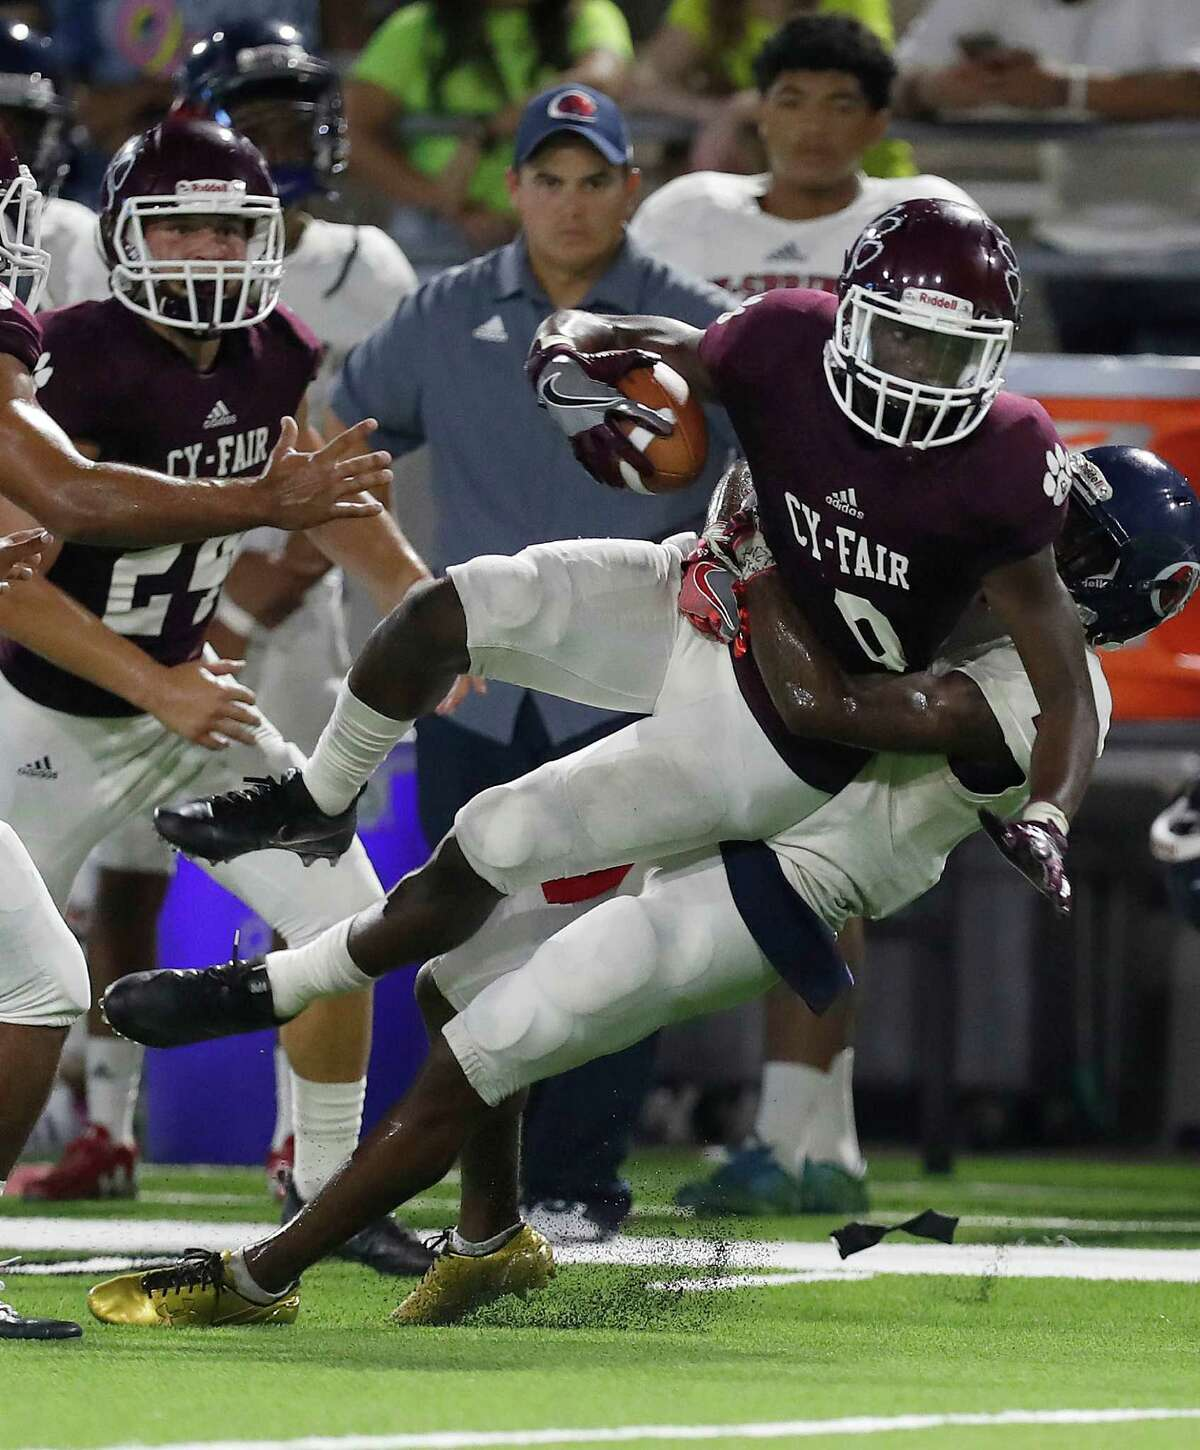 Cy-Fair's Erick Hallett (8) intercepts a pass intended for Cypress Spring Jah'marae Sheread (2) during the second half of the Cy Springs vs. Cy-Fair high school football game at Pridgeon Stadium, Thursday, Sept. 15, 2016 in Houston.